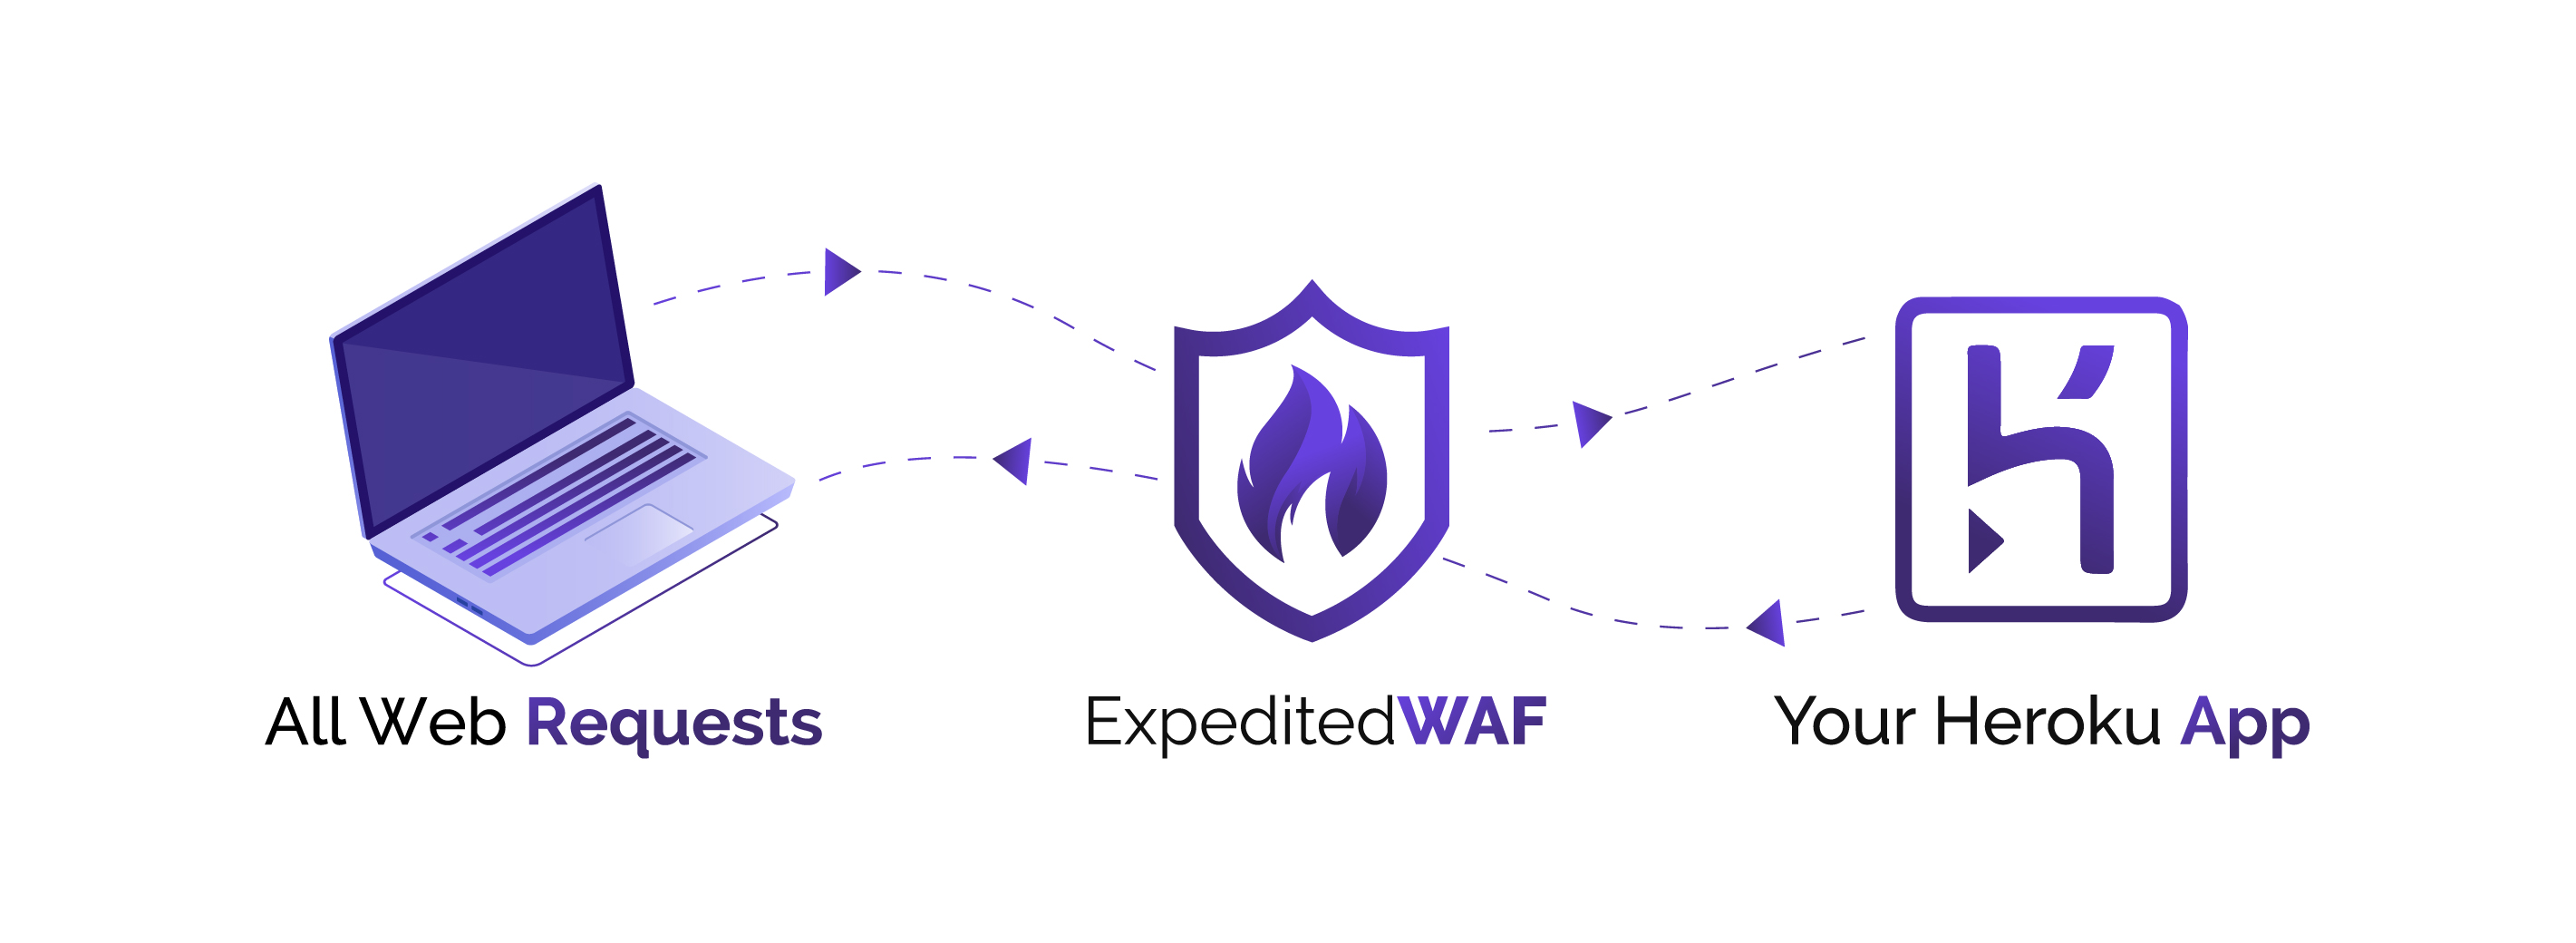 Expedited WAF | Heroku Dev Center